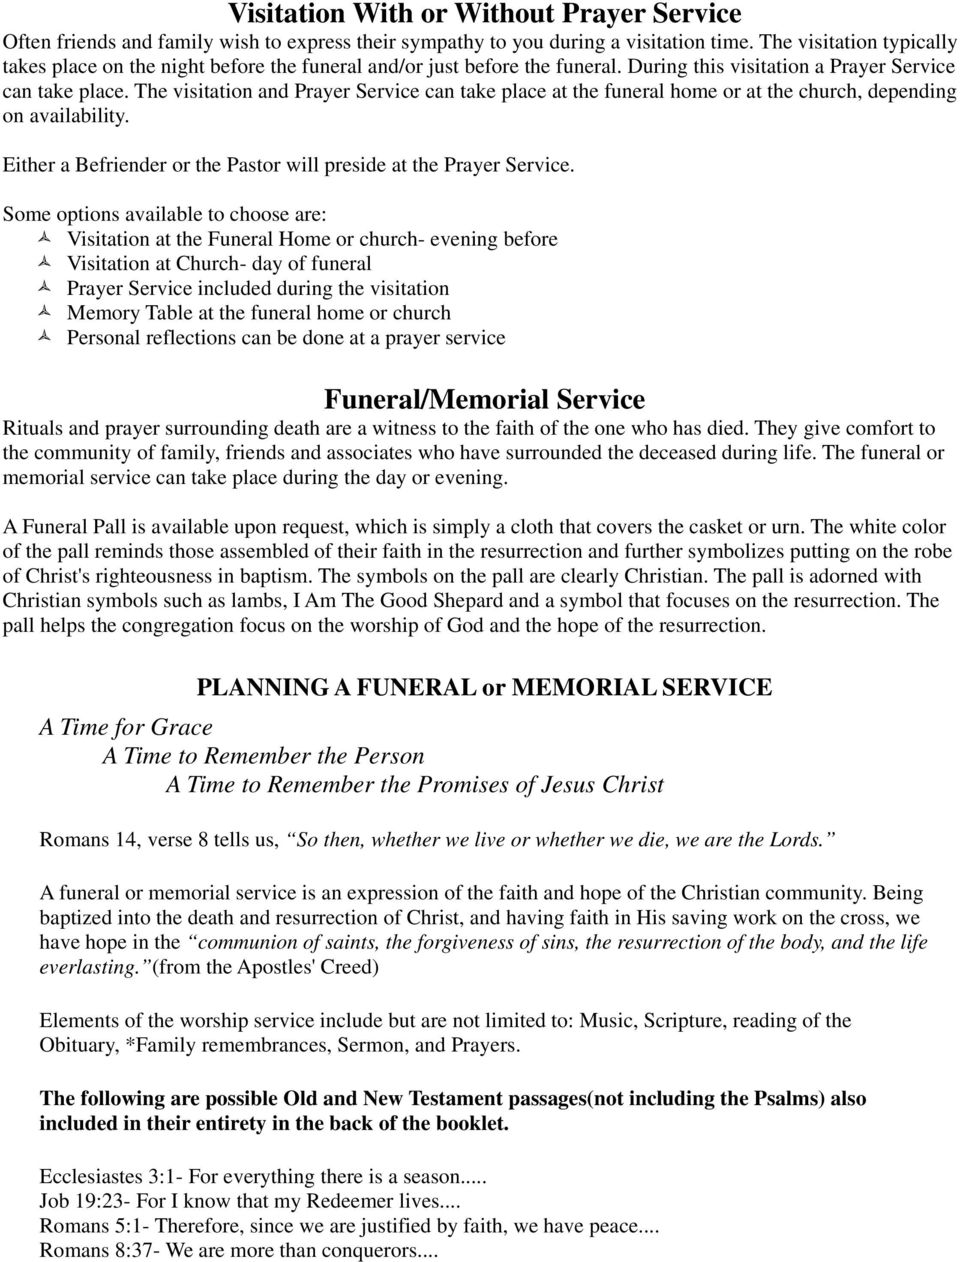 Immanuel Lutheran Funeral Planning Guide  Immanuel Lutheran